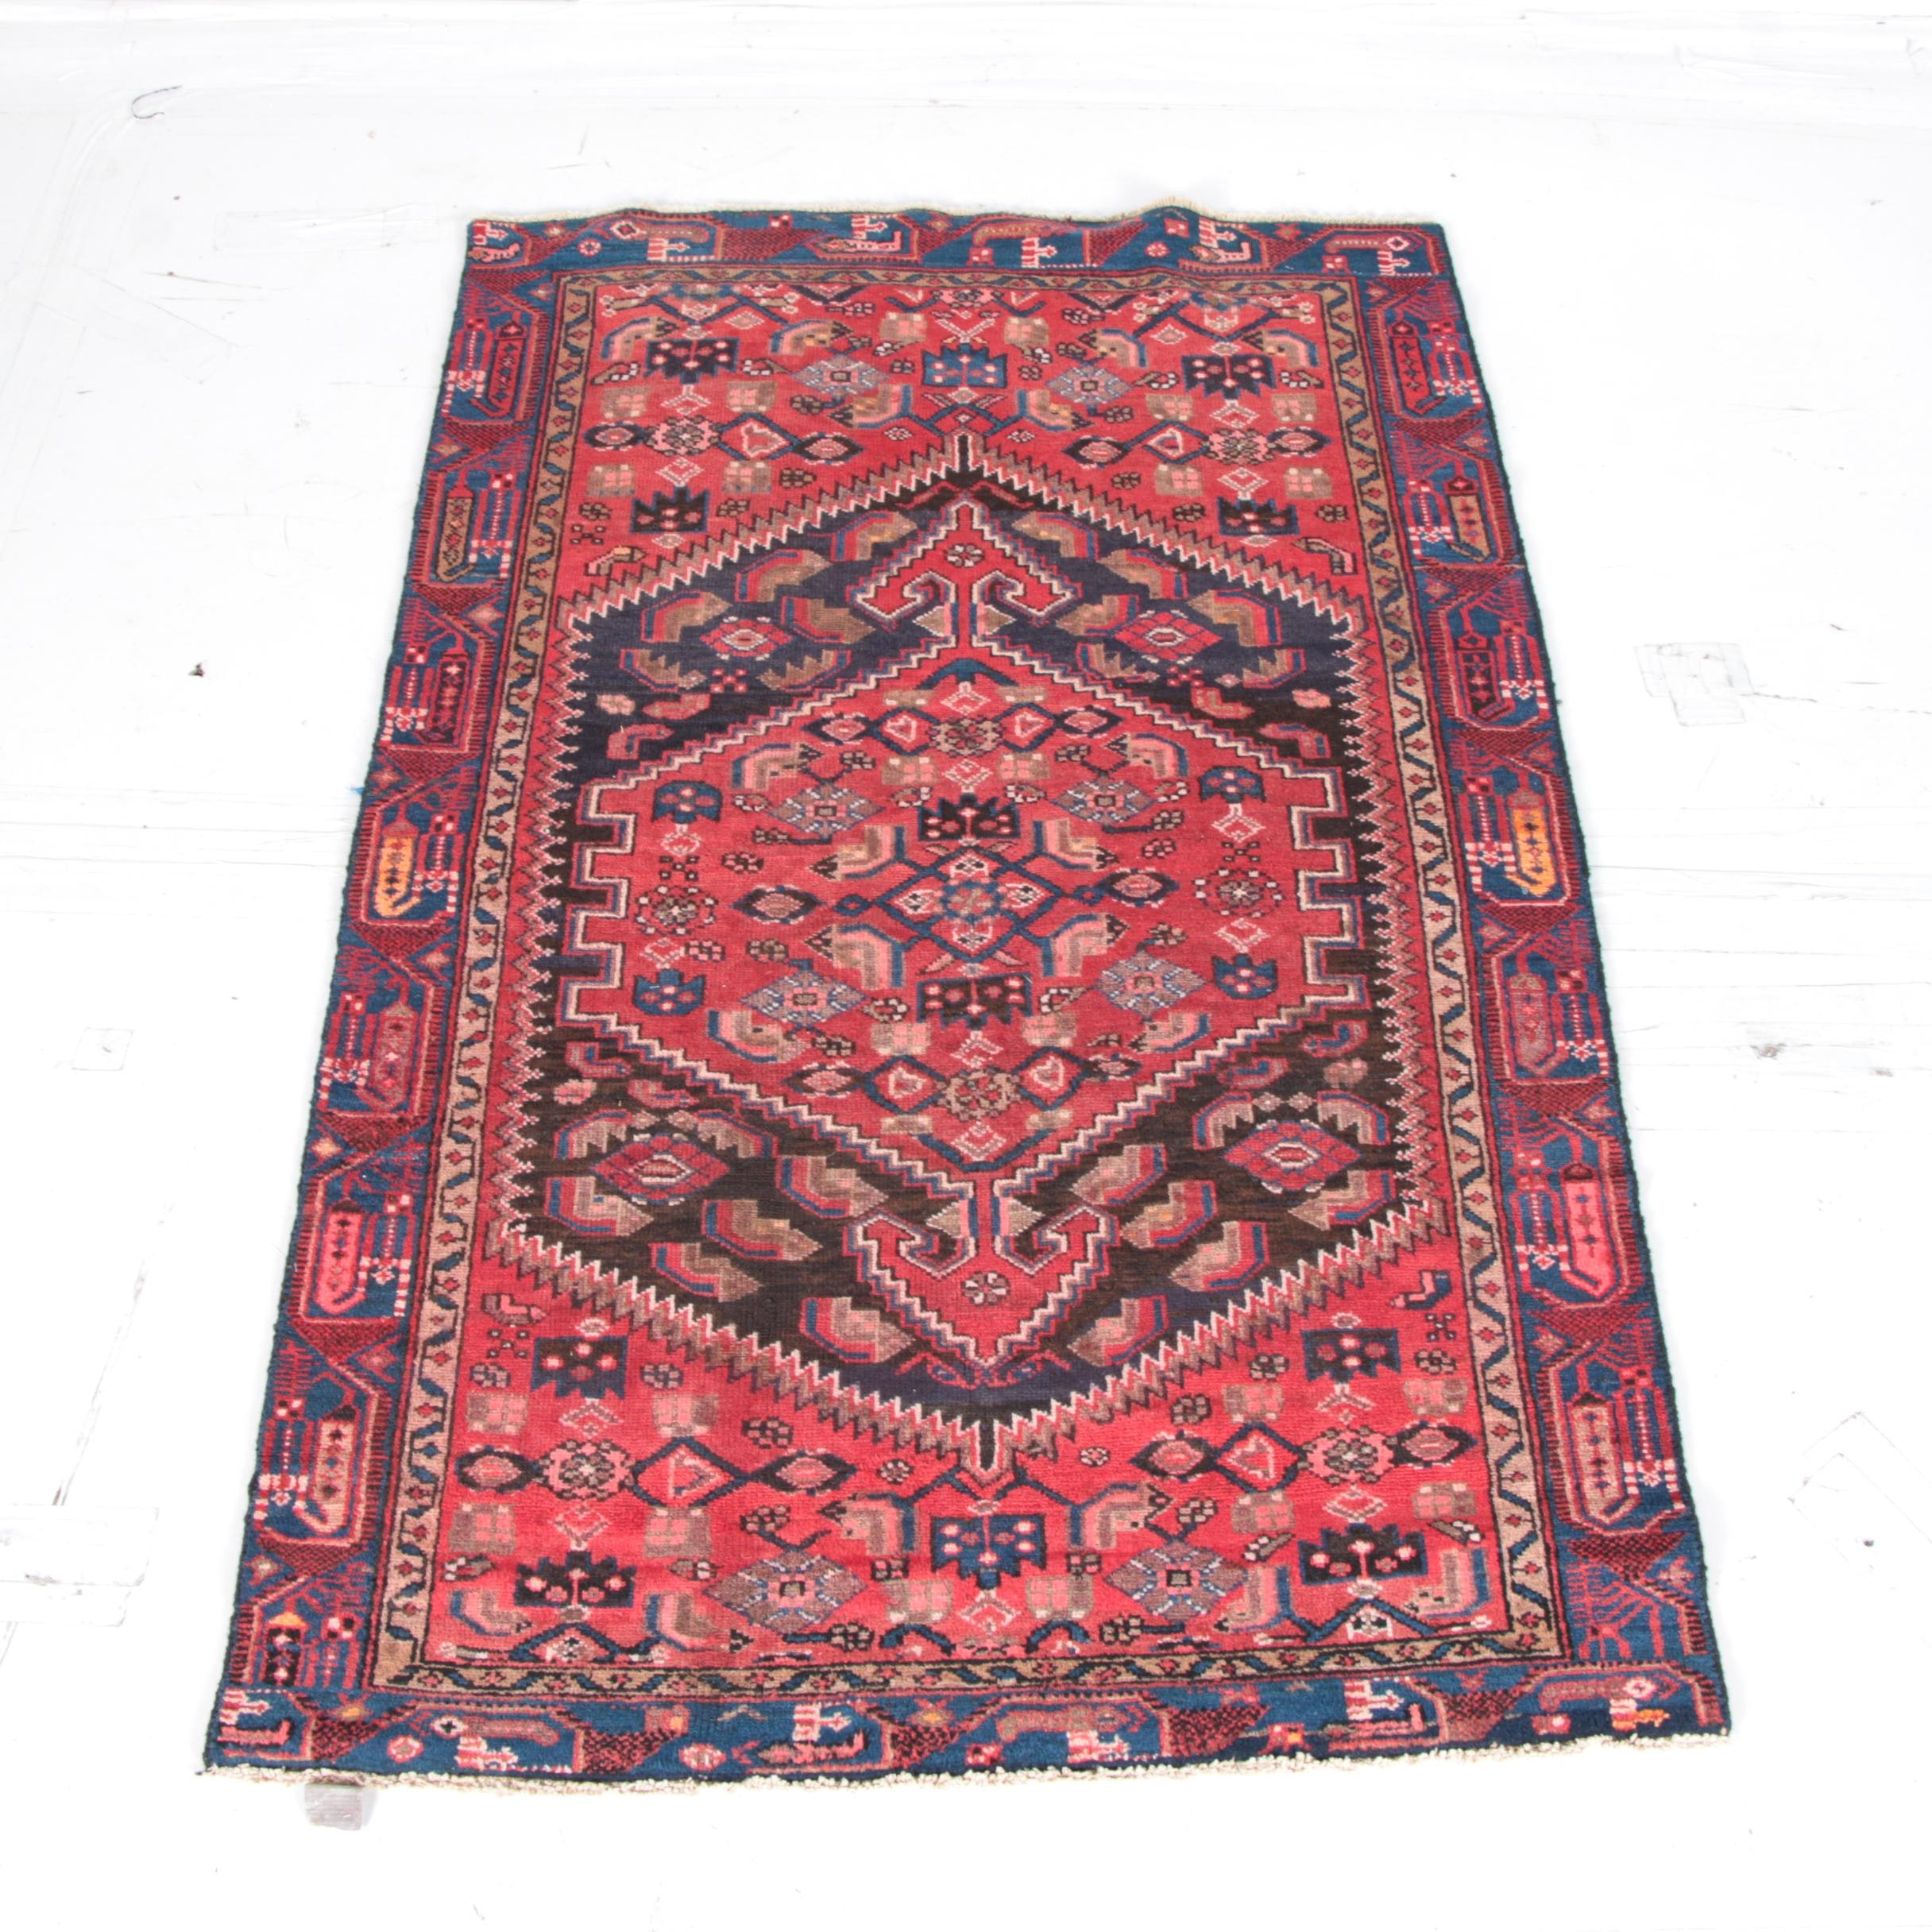 Handwoven Semi-Antique Persian Zanjan Shiraz Wool Area Rug